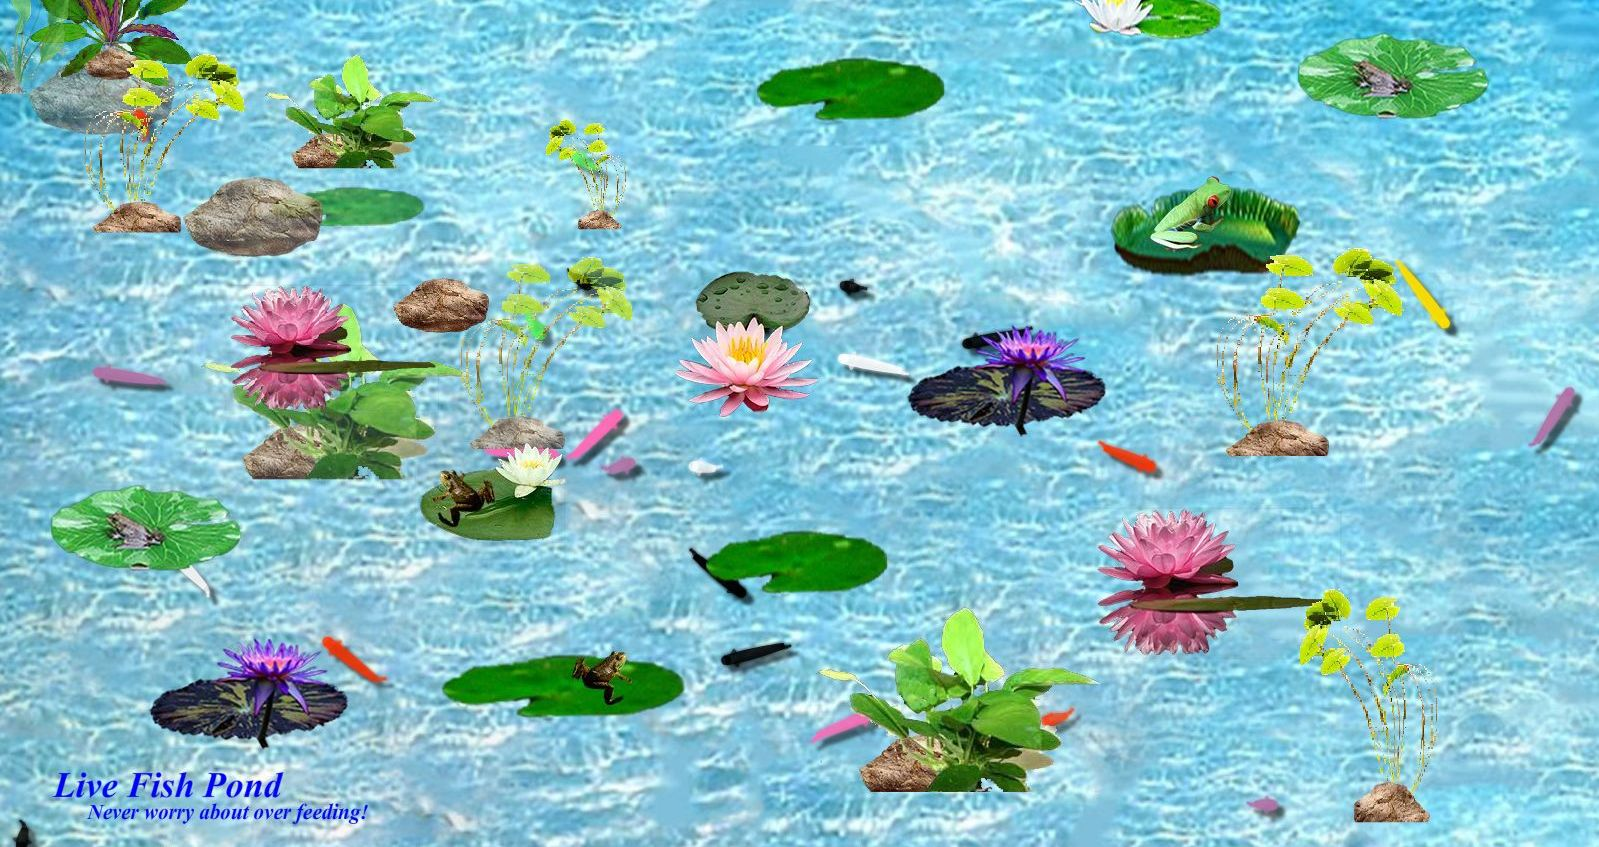 Live fish pond download 11street malaysia board games for Amazon fish ponds